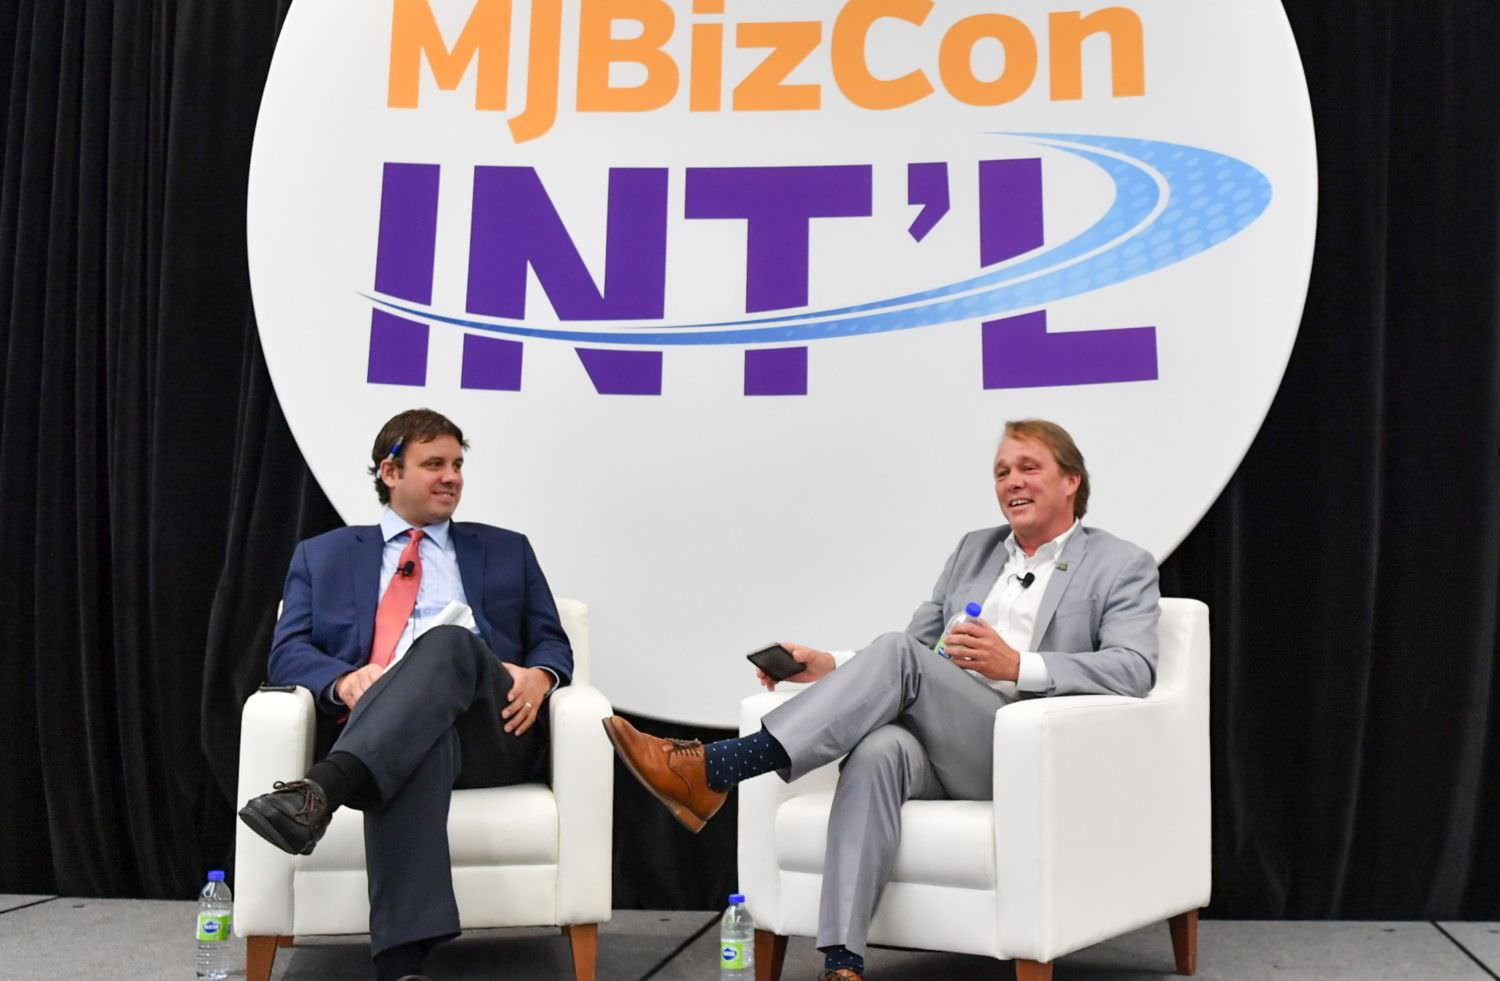 Canopy Growth CEO Bruce Linton, Bruce Linton discusses deploying CA$5 billion, Canopy's commitment to international growth